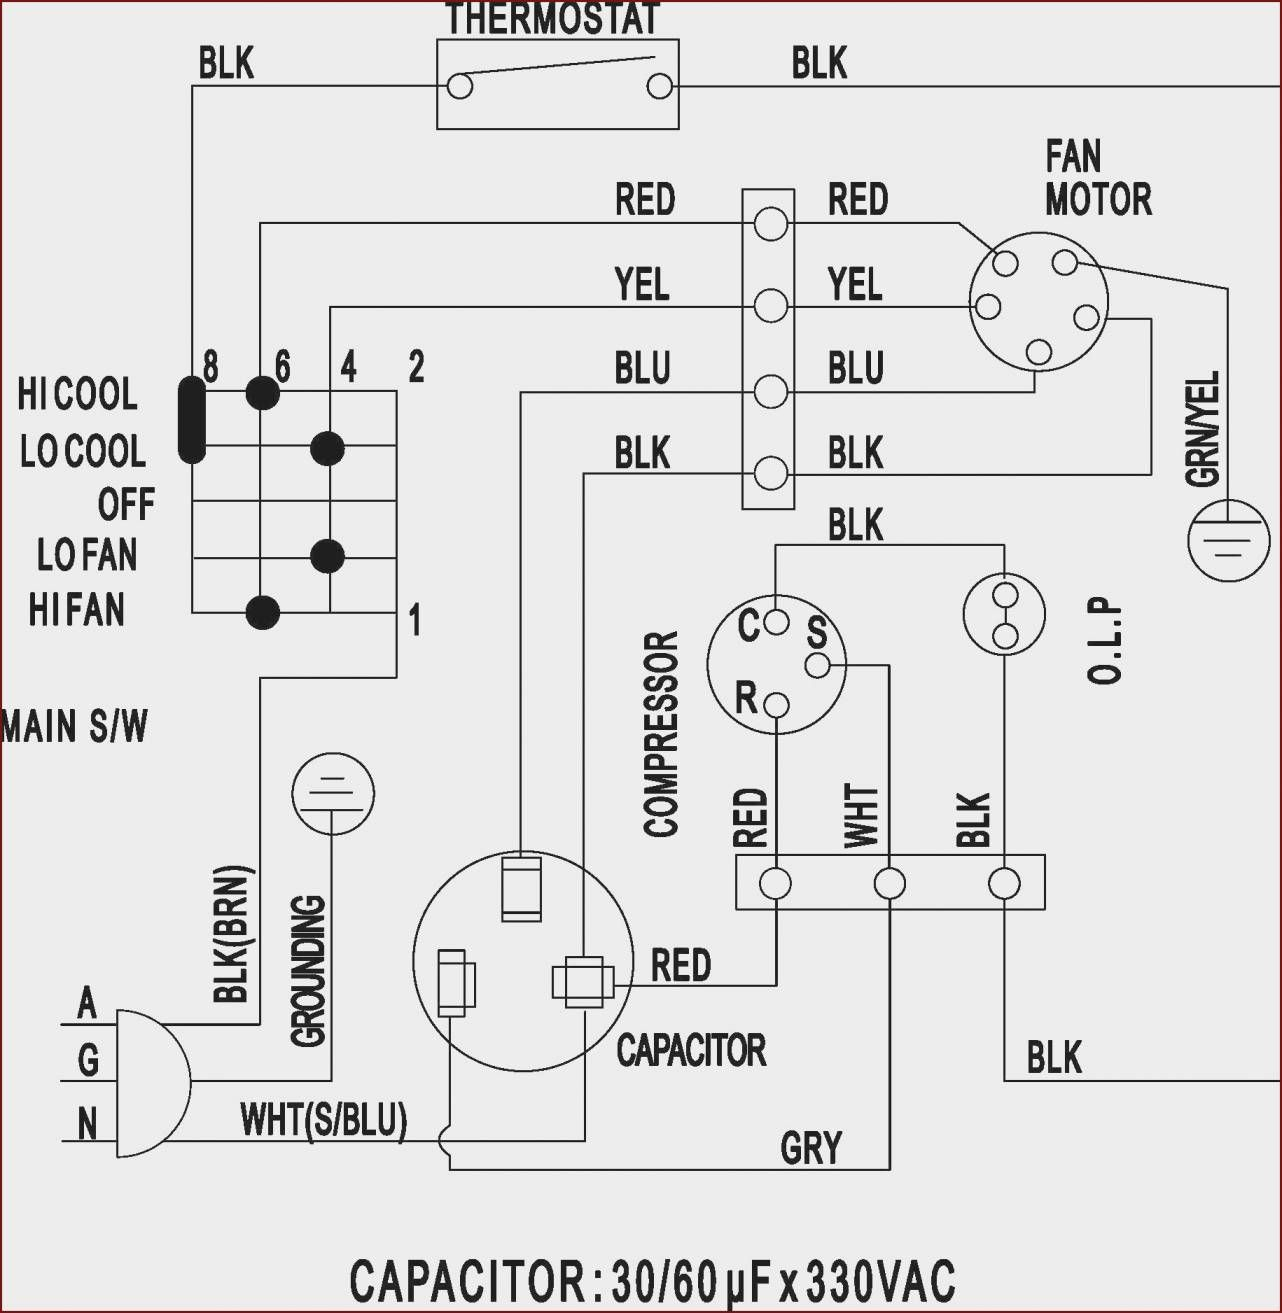 17 Compressor Capacitor Wiring Diagram Electrical Circuit Diagram Ac Wiring Ac Capacitor